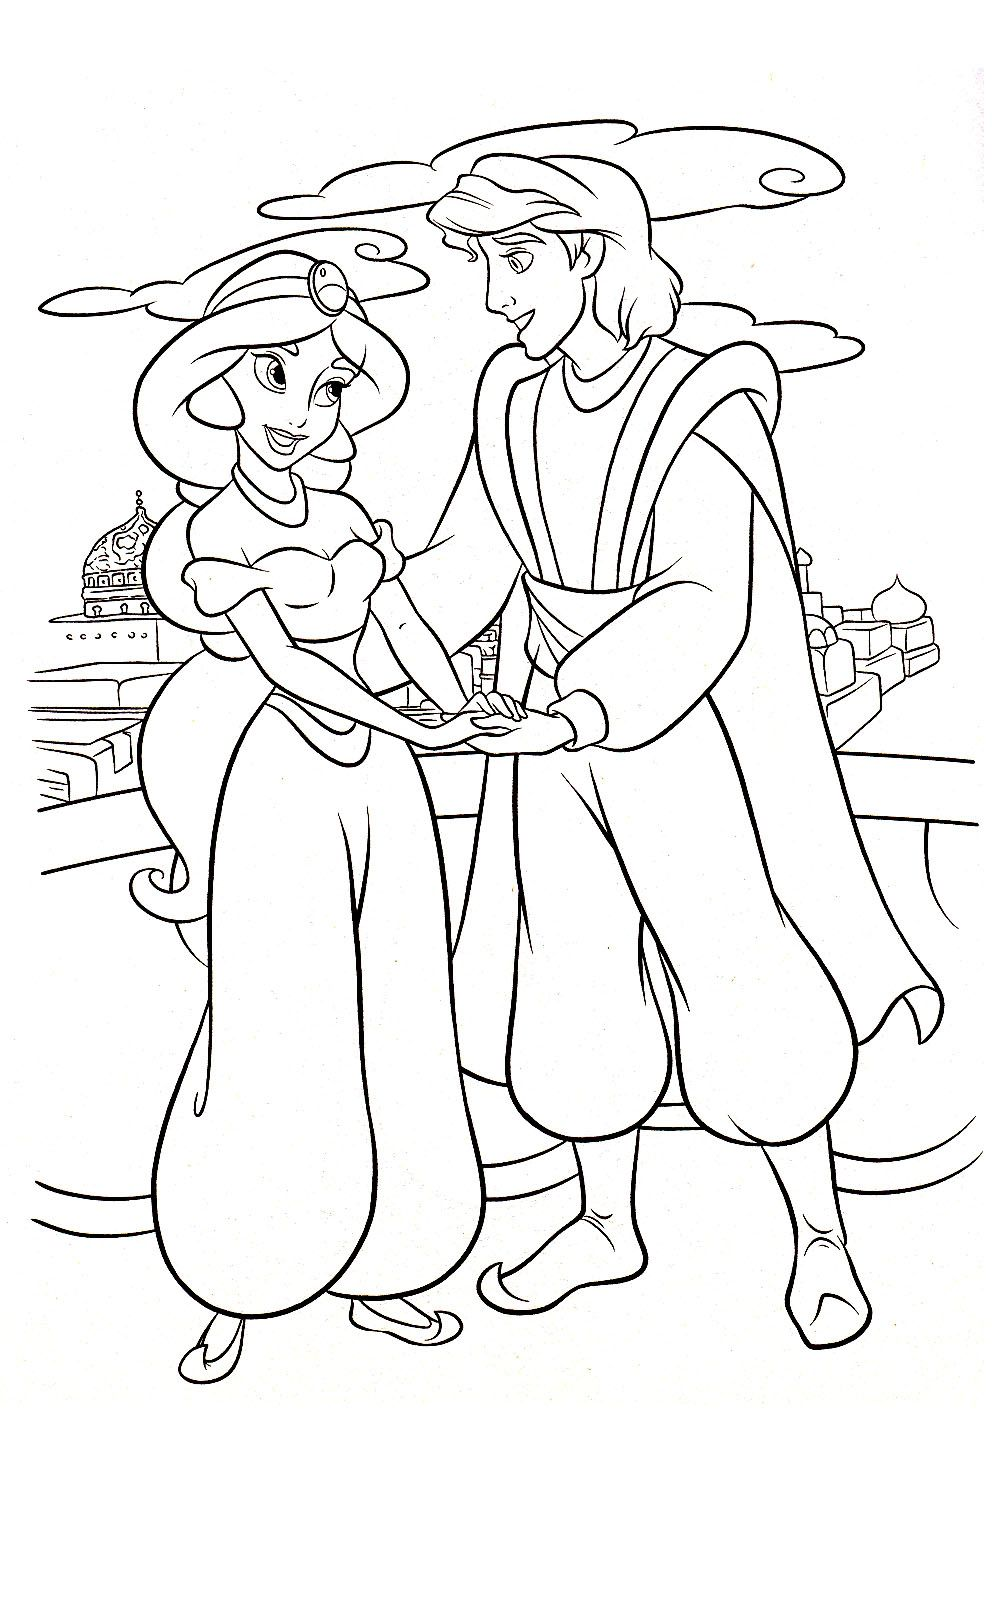 Disney Jasmine Colouring Pages (page 3) - Coloring Home | 1600x1000